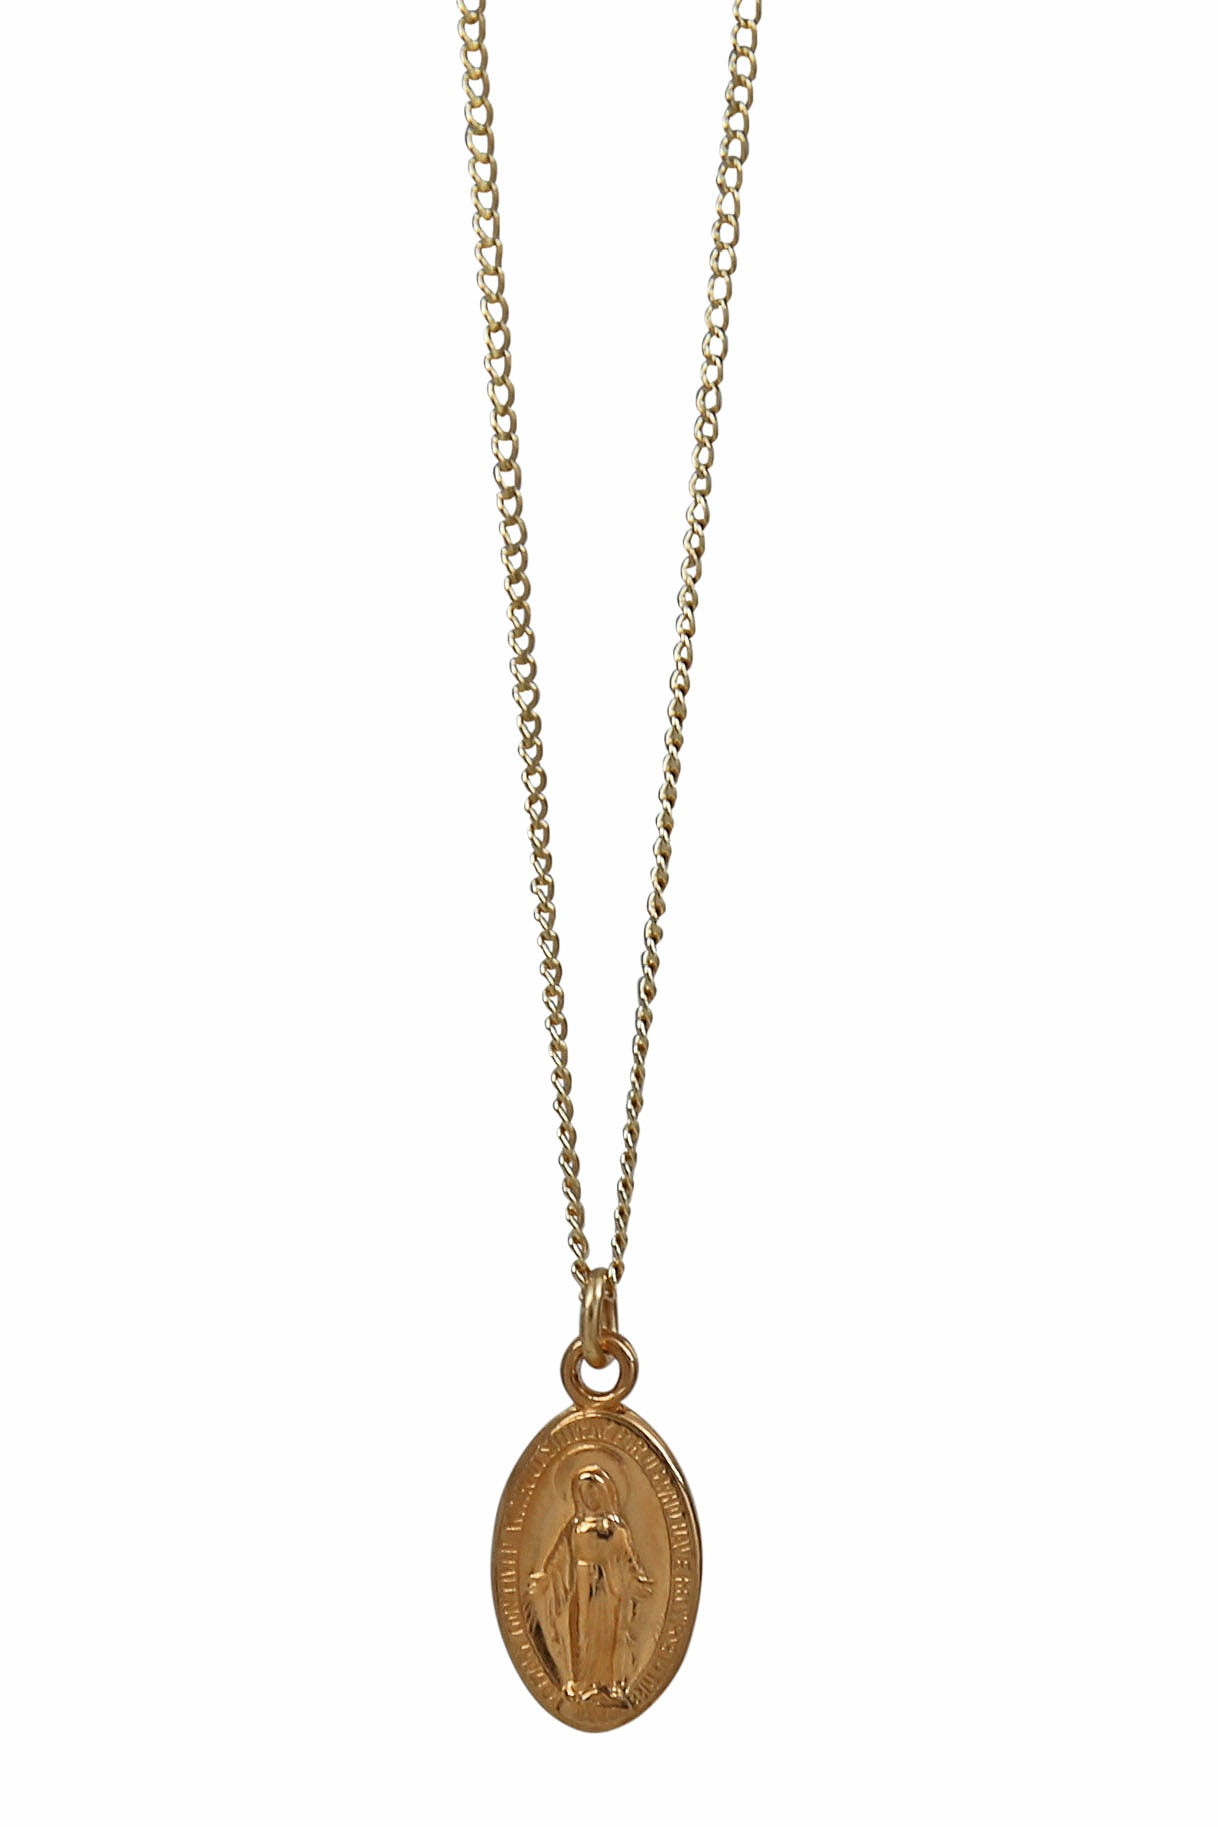 mary necklace - petite